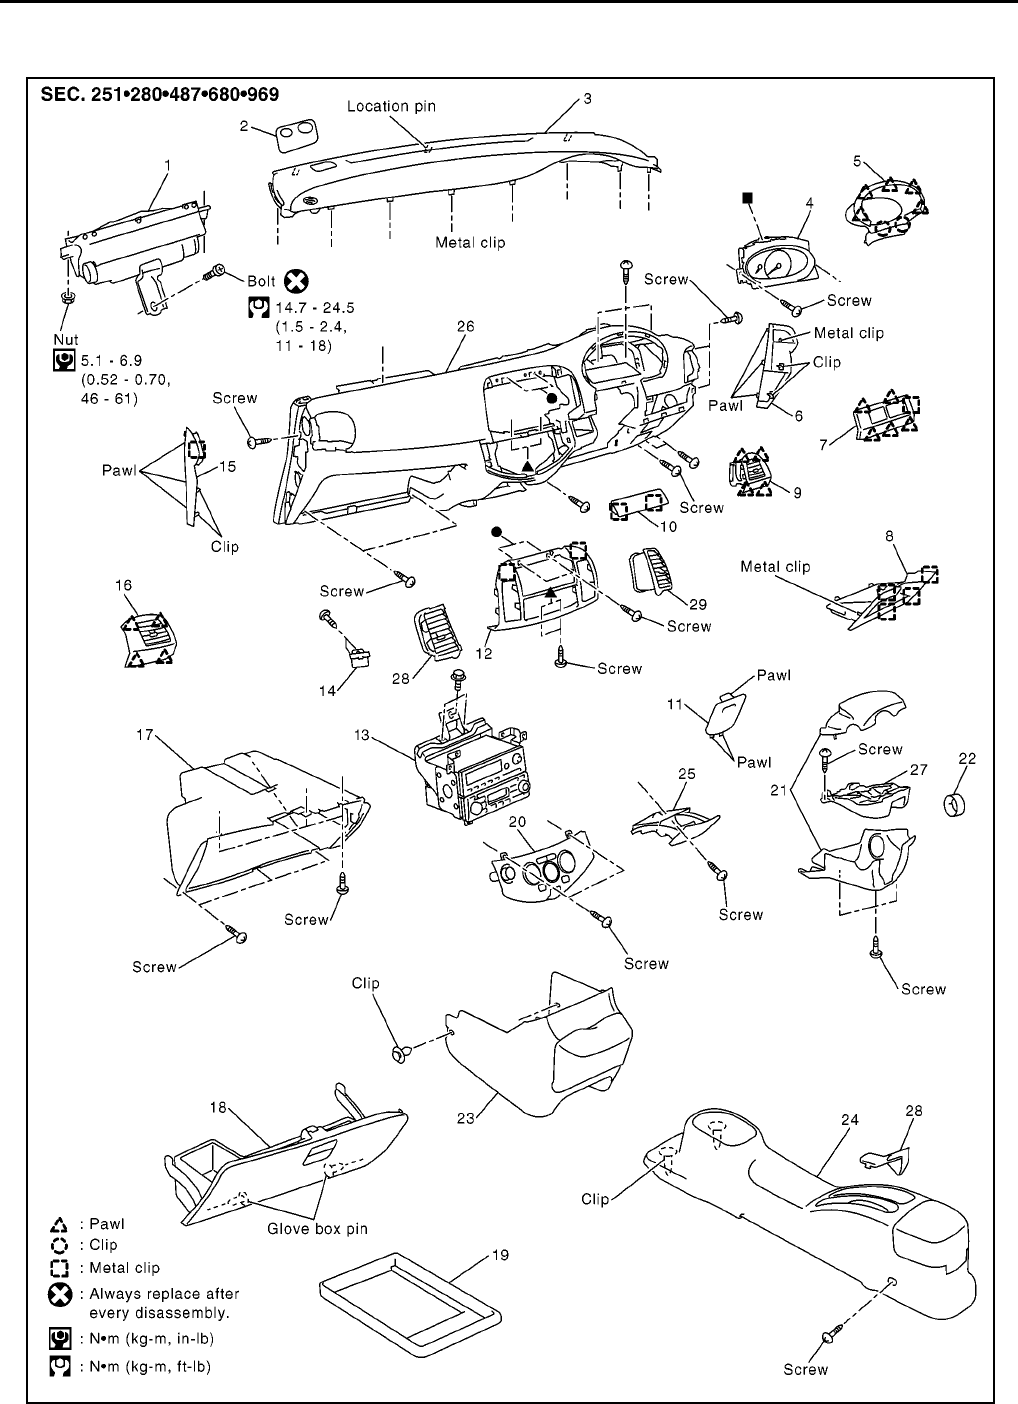 Nissan micra wiring diagrams 2003 2005 21 pdf rh manuals co nissan micra parts catalog nissan